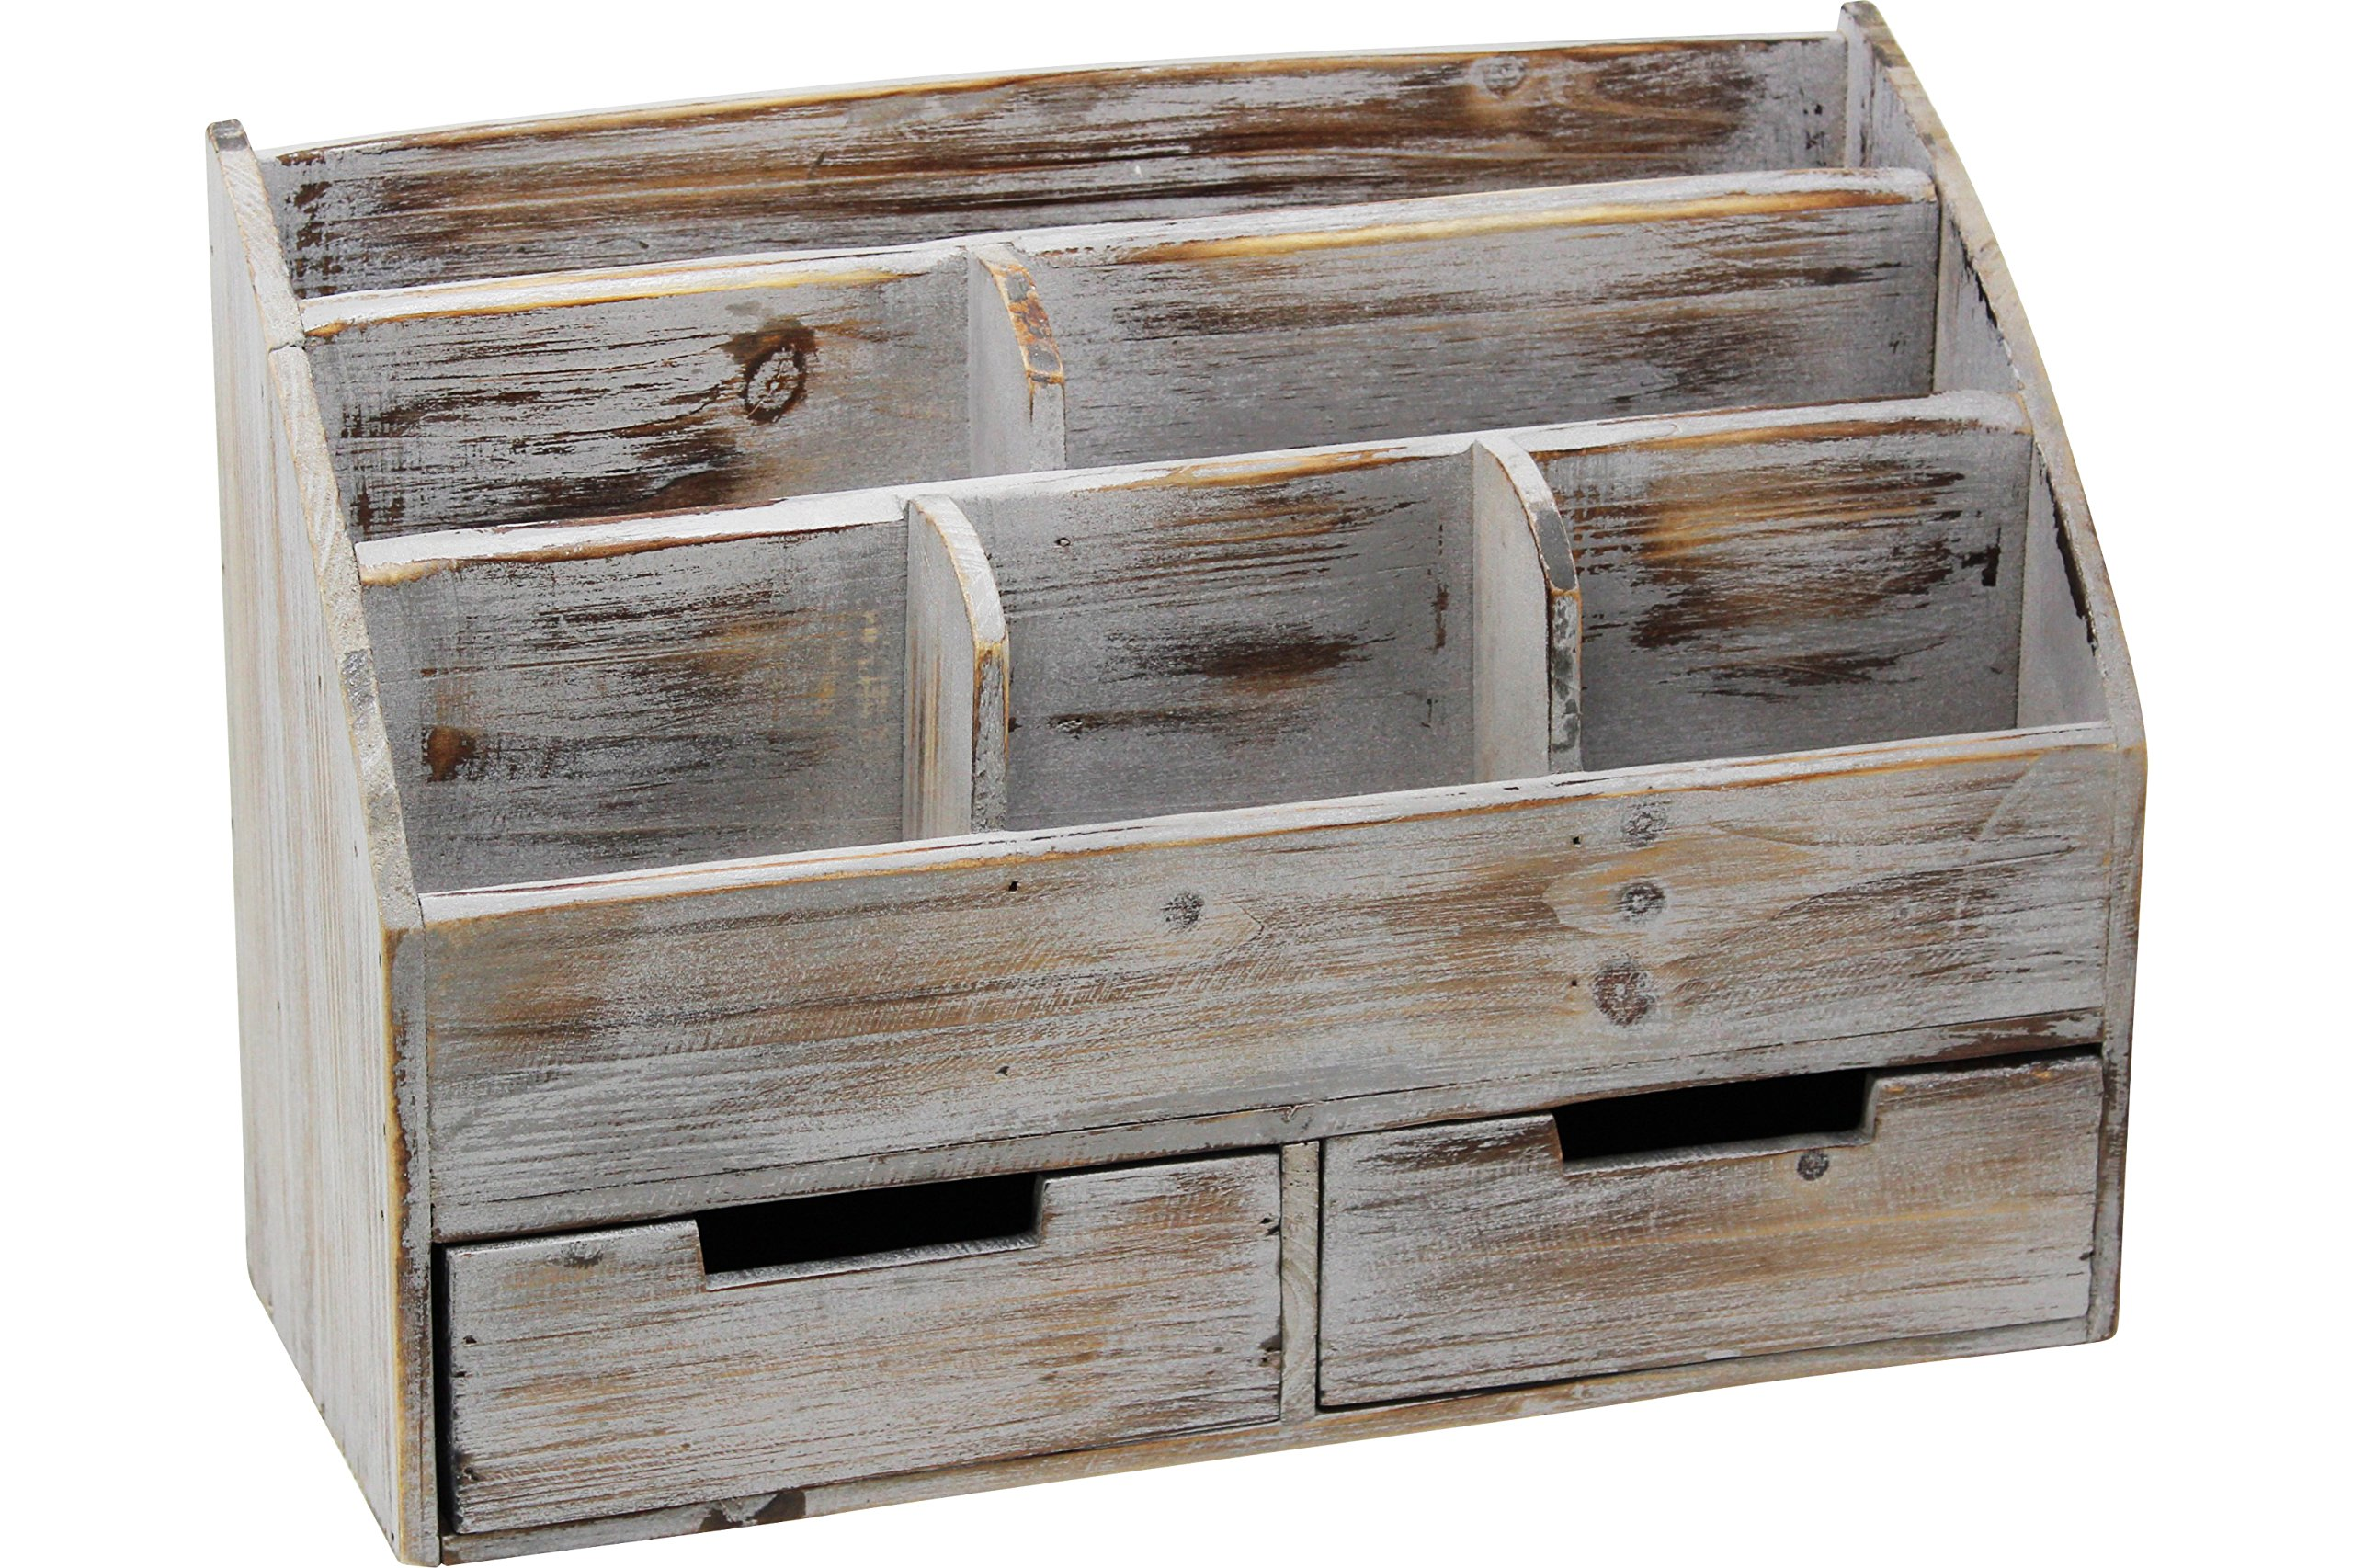 "Vintage Rustic Wooden Office Desk Organizer & Mail Rack for Desktop, Tabletop, or Counter - Distressed Torched Wood - for Office Supplies, Desk Accessories, Mail - MAKE AN IMPRESSION - Whether in Your Office or Kitchen, You Will Be Sure To Catch The Attention Of Your Visitors, Clients, or Boss With This Elegant Distressed Wood Organizer Caddy. TONS OF ROOM - With 6 Compartments and 2 Drawers, This Oversized Organizer Will Hold All of Your Desk Accessories, Mail, or Office Supplies. LARGE OVERALL DIMENSIONS - 14.3"" Wide x 6"" Deep x 9.8"" High - Leaves Plenty Of Room To Hold Letter and Legal Size Notebooks & Paper, Oversized Envelopes, And Many Other Home or Office Desk Supplies - living-room-decor, living-room, home-decor - 91LW4JQsRFL -"